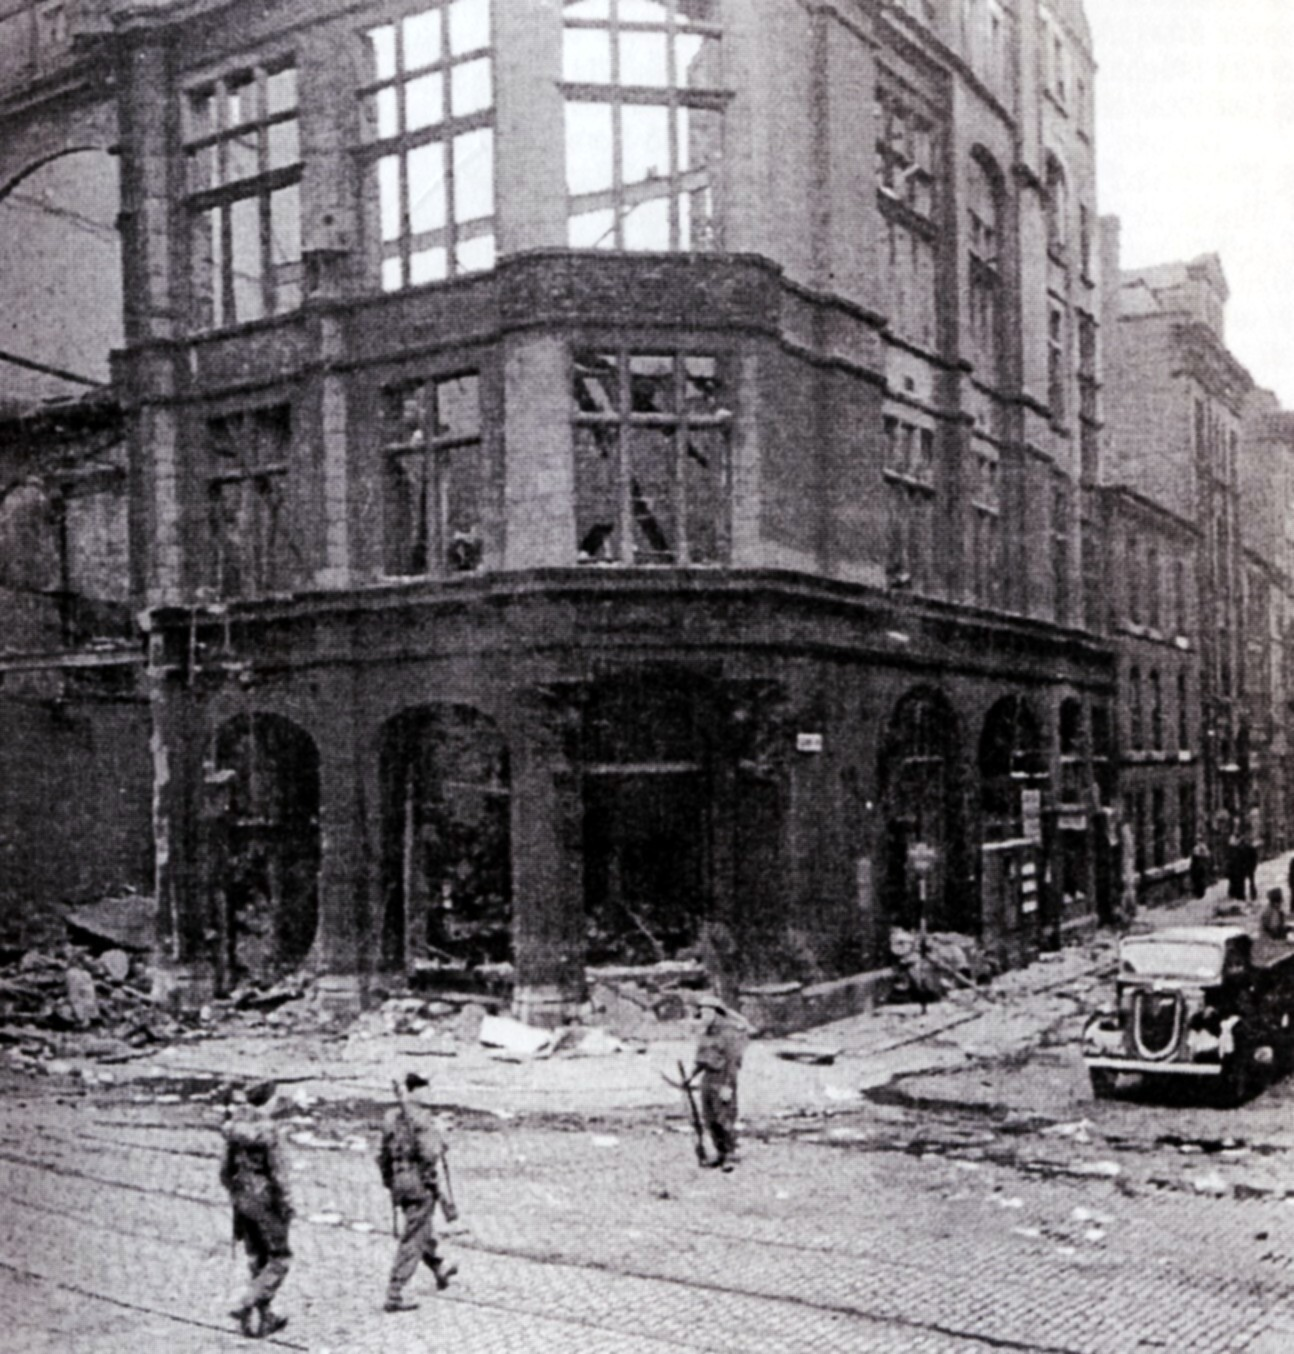 Corner of Lloyd St and Deansgate, 1941